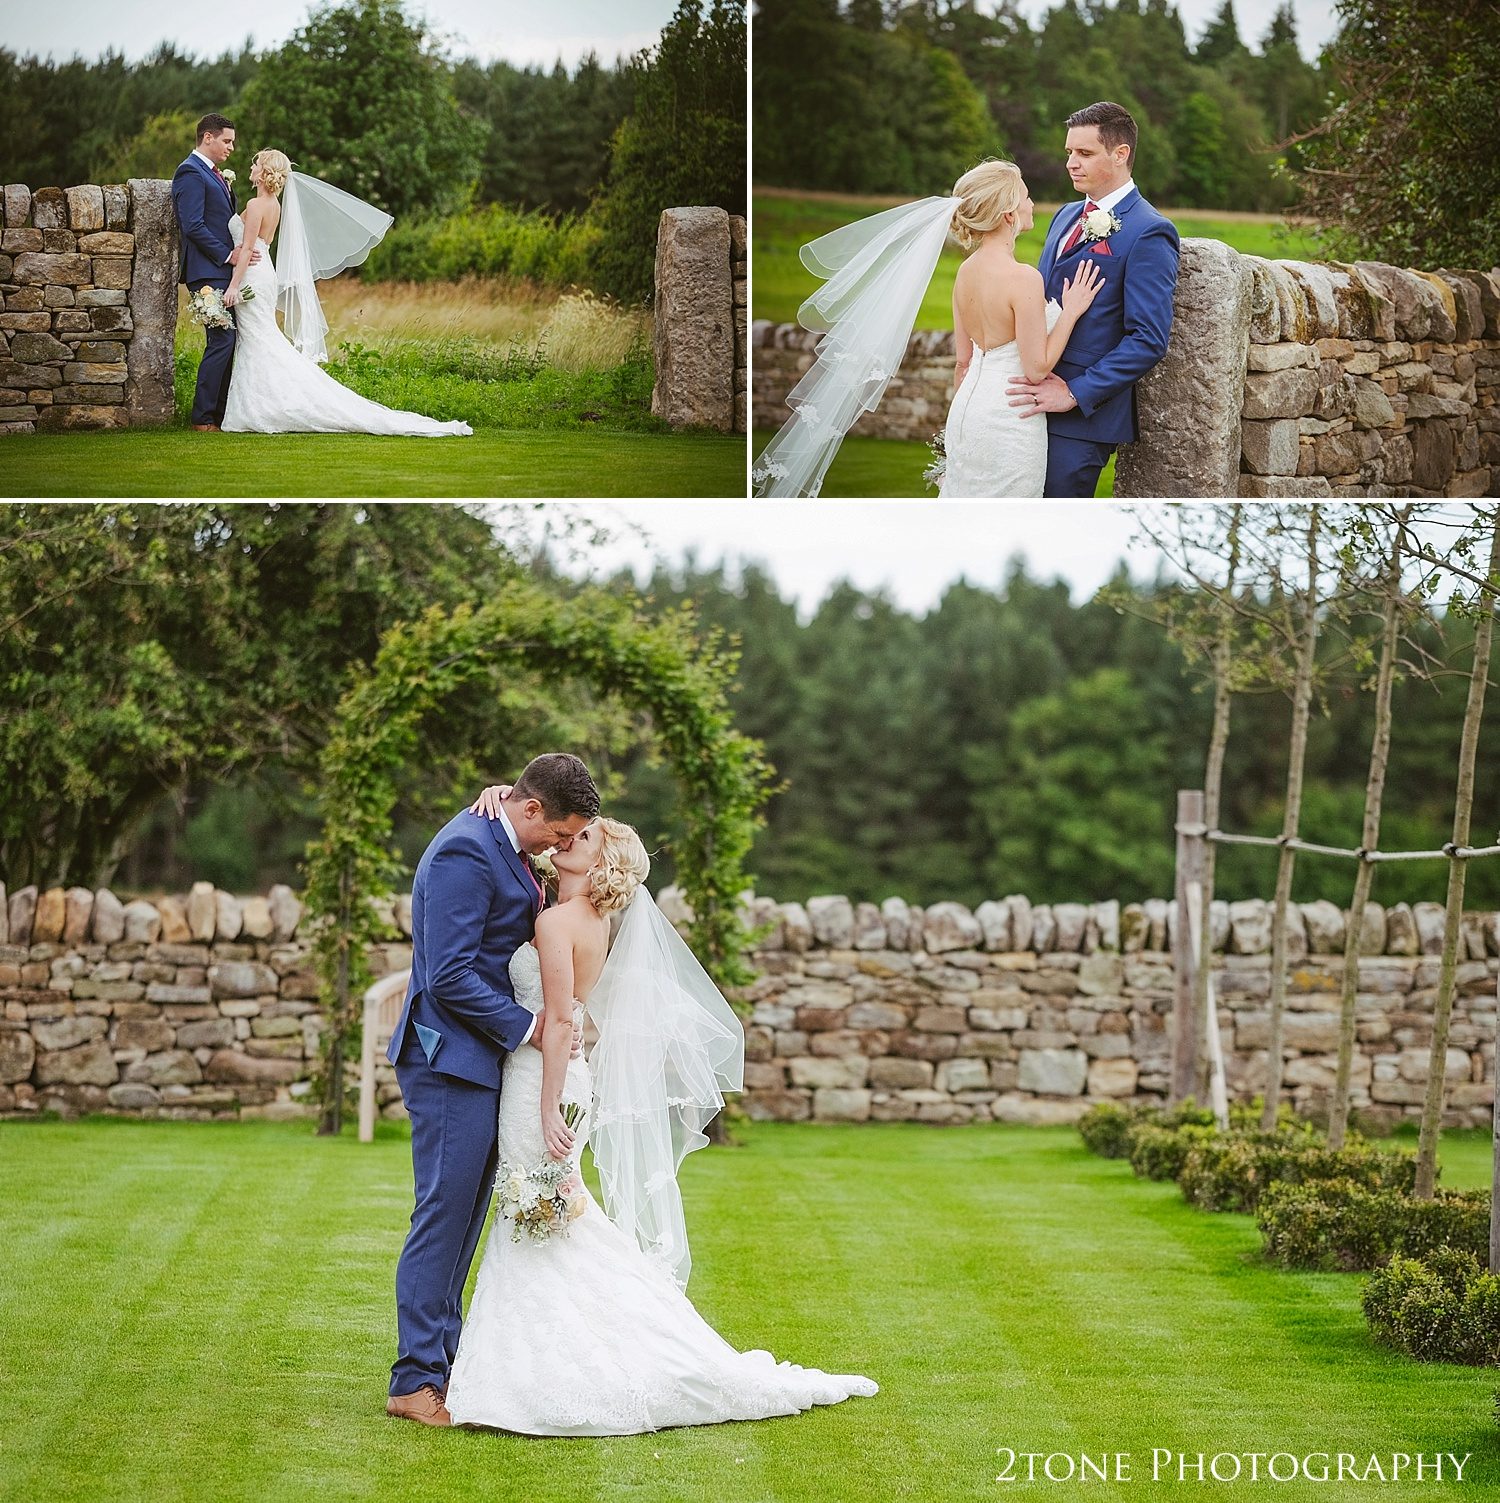 Natural and creative wedding photography at Healey Barn by wedding photography team, 2tone Photography www.2tonephotography.co.uk